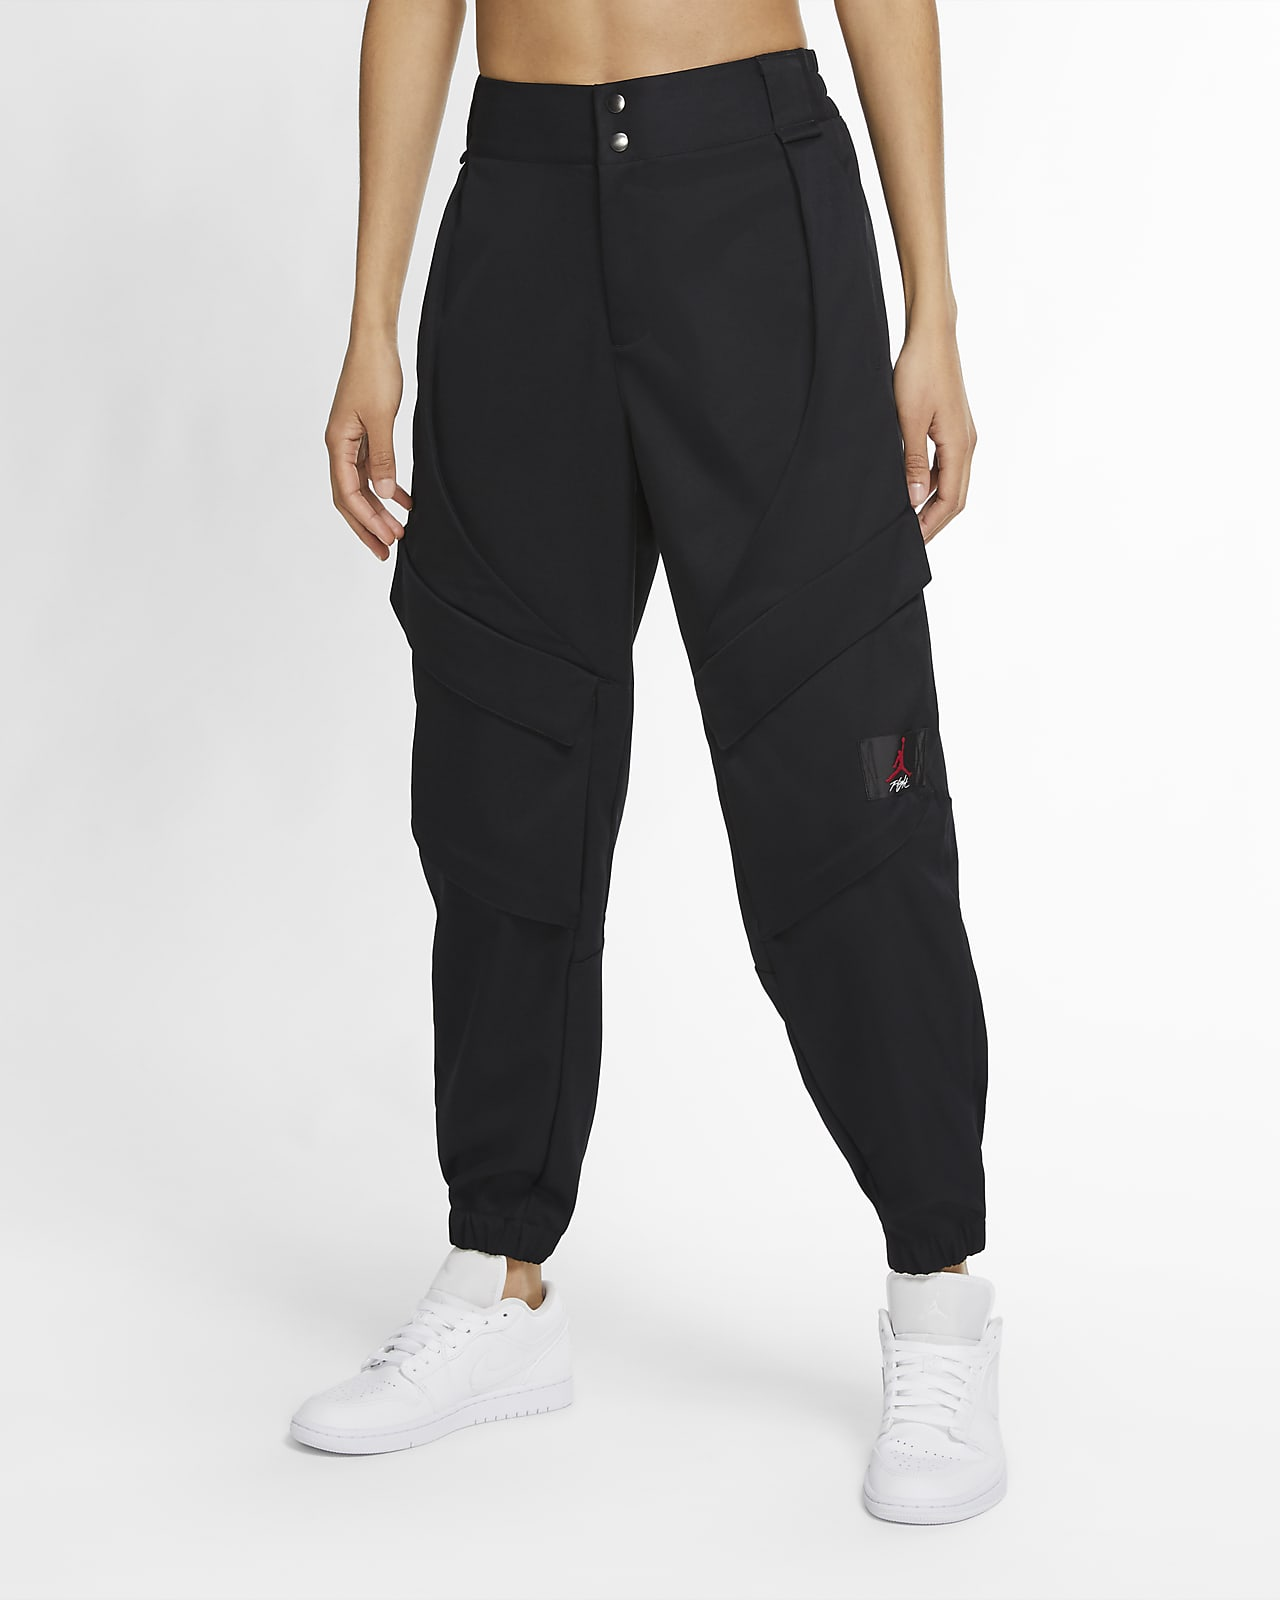 Jordan Essential Women's Utility Trousers